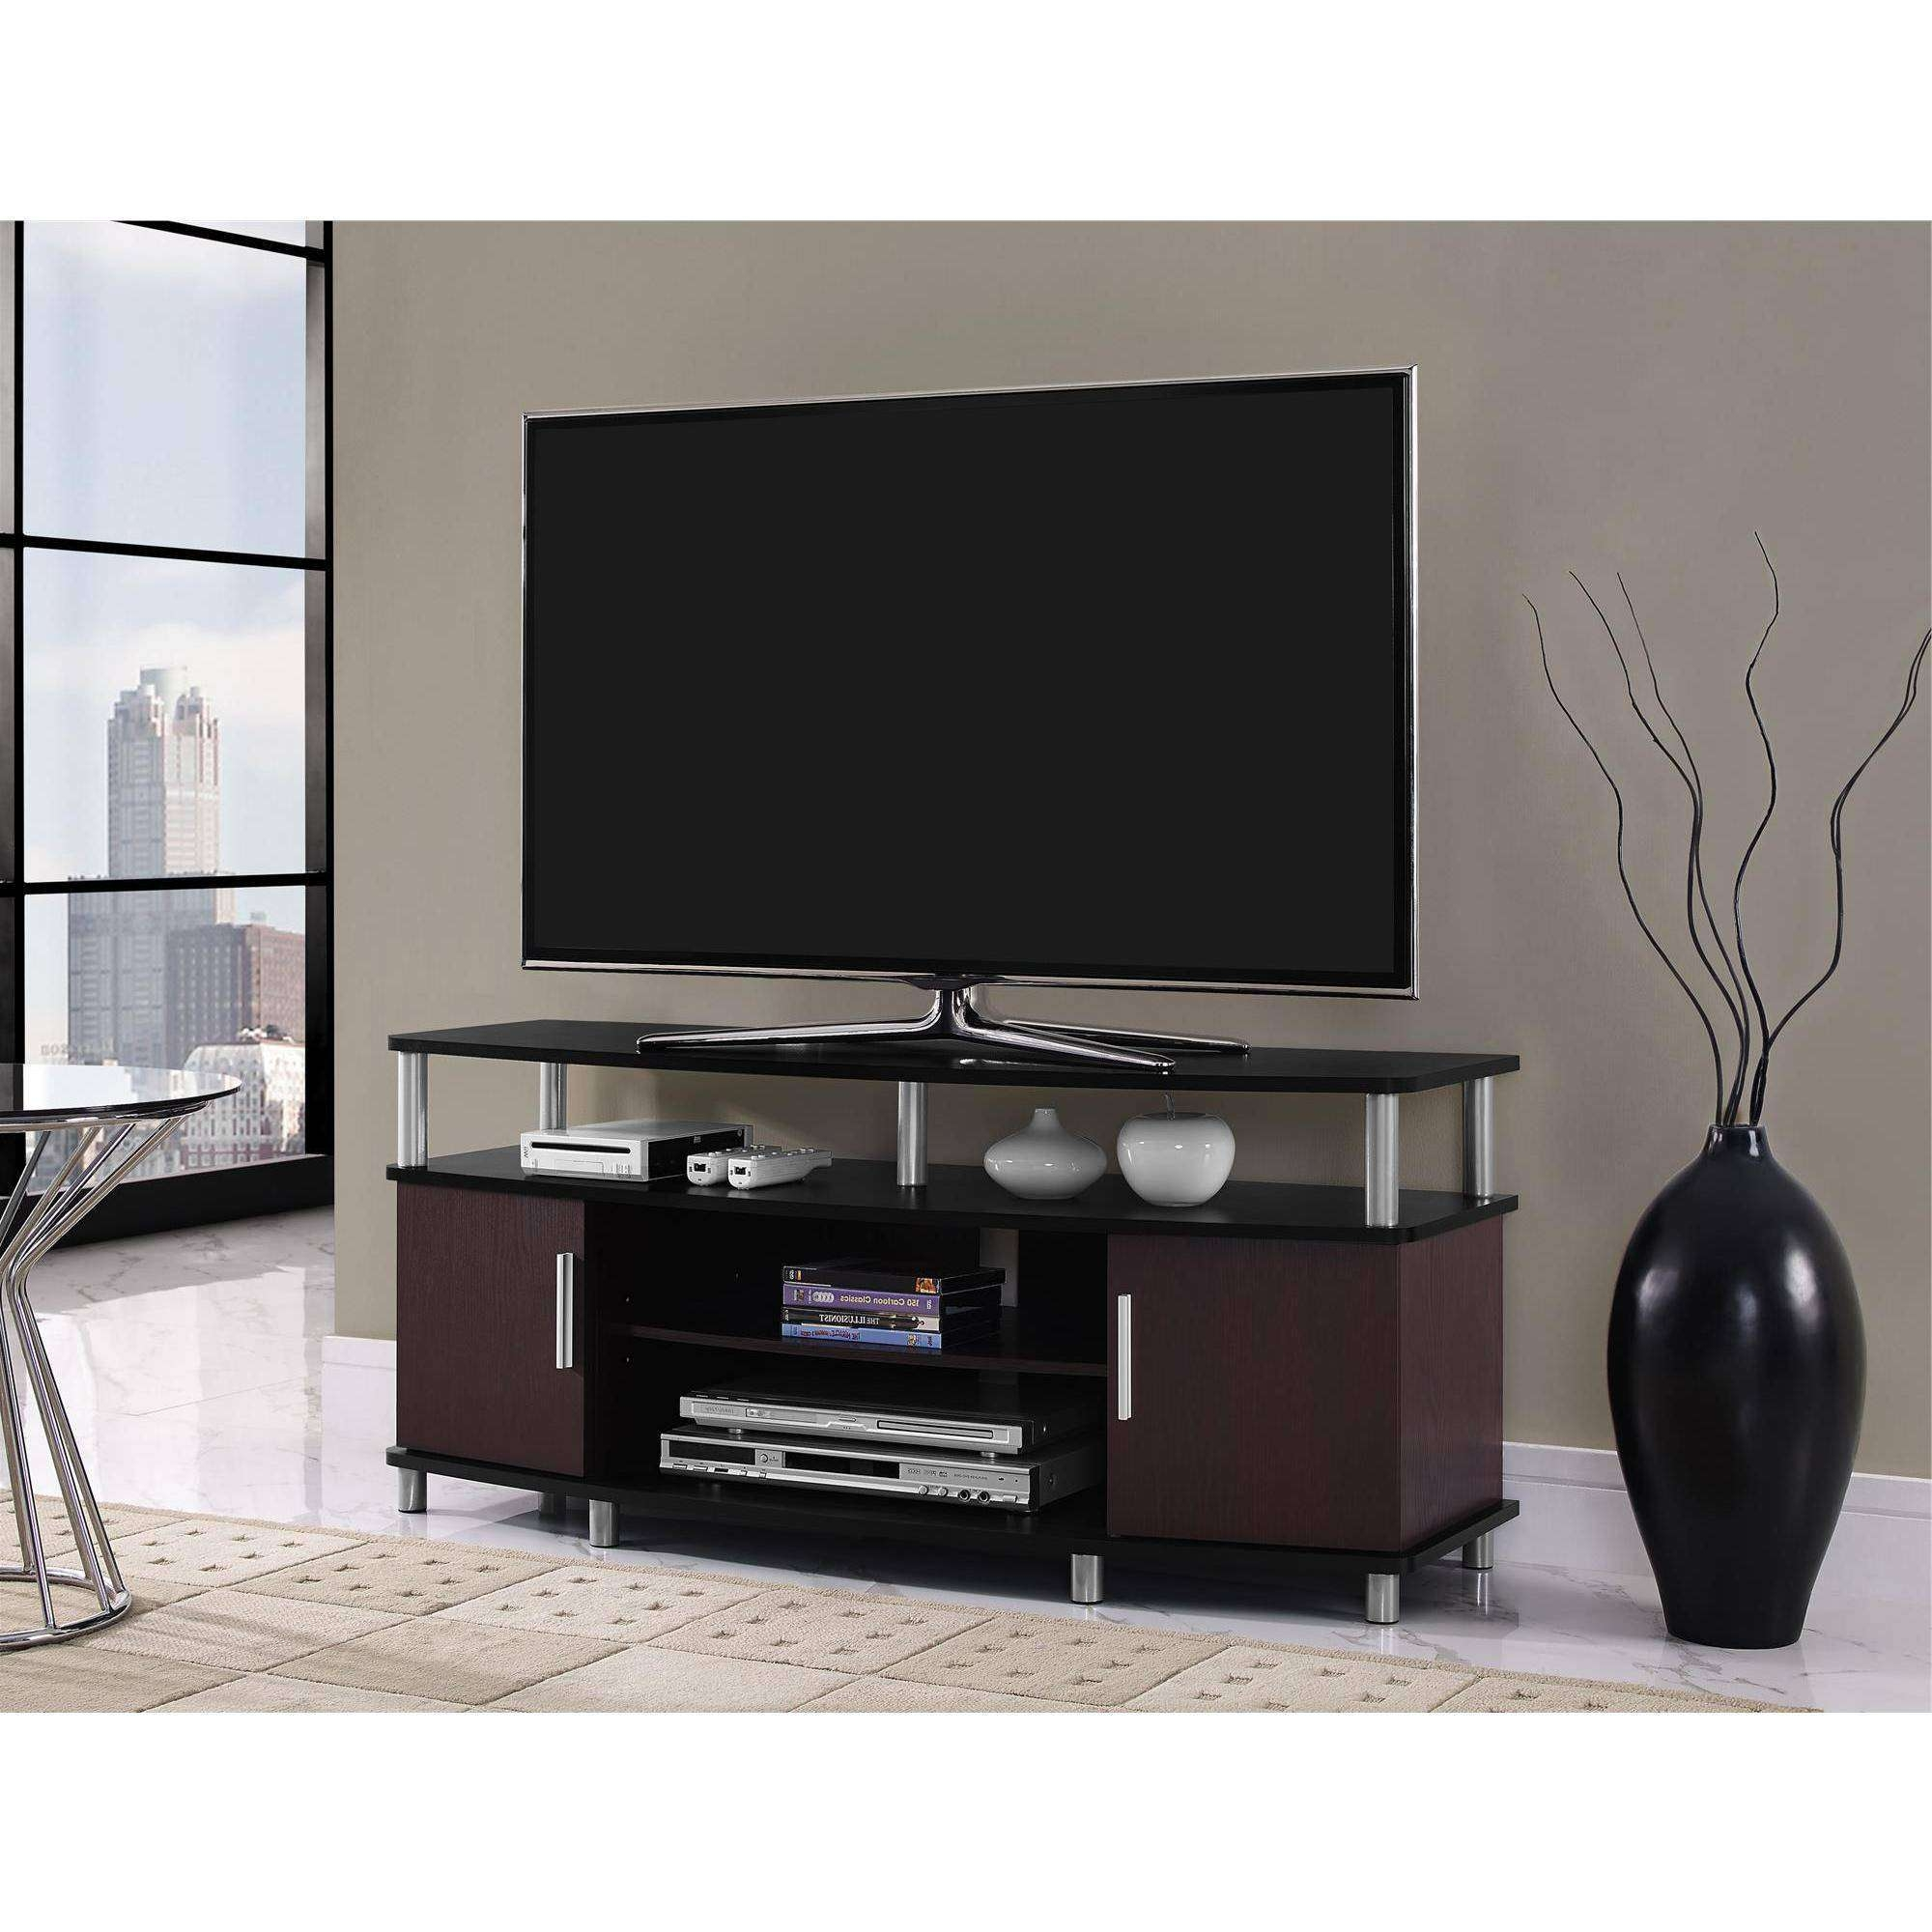 Luxury 50 Inch Tv Stands 62 About Remodel Home Decorating Ideas Within Luxury Tv Stands (View 11 of 15)